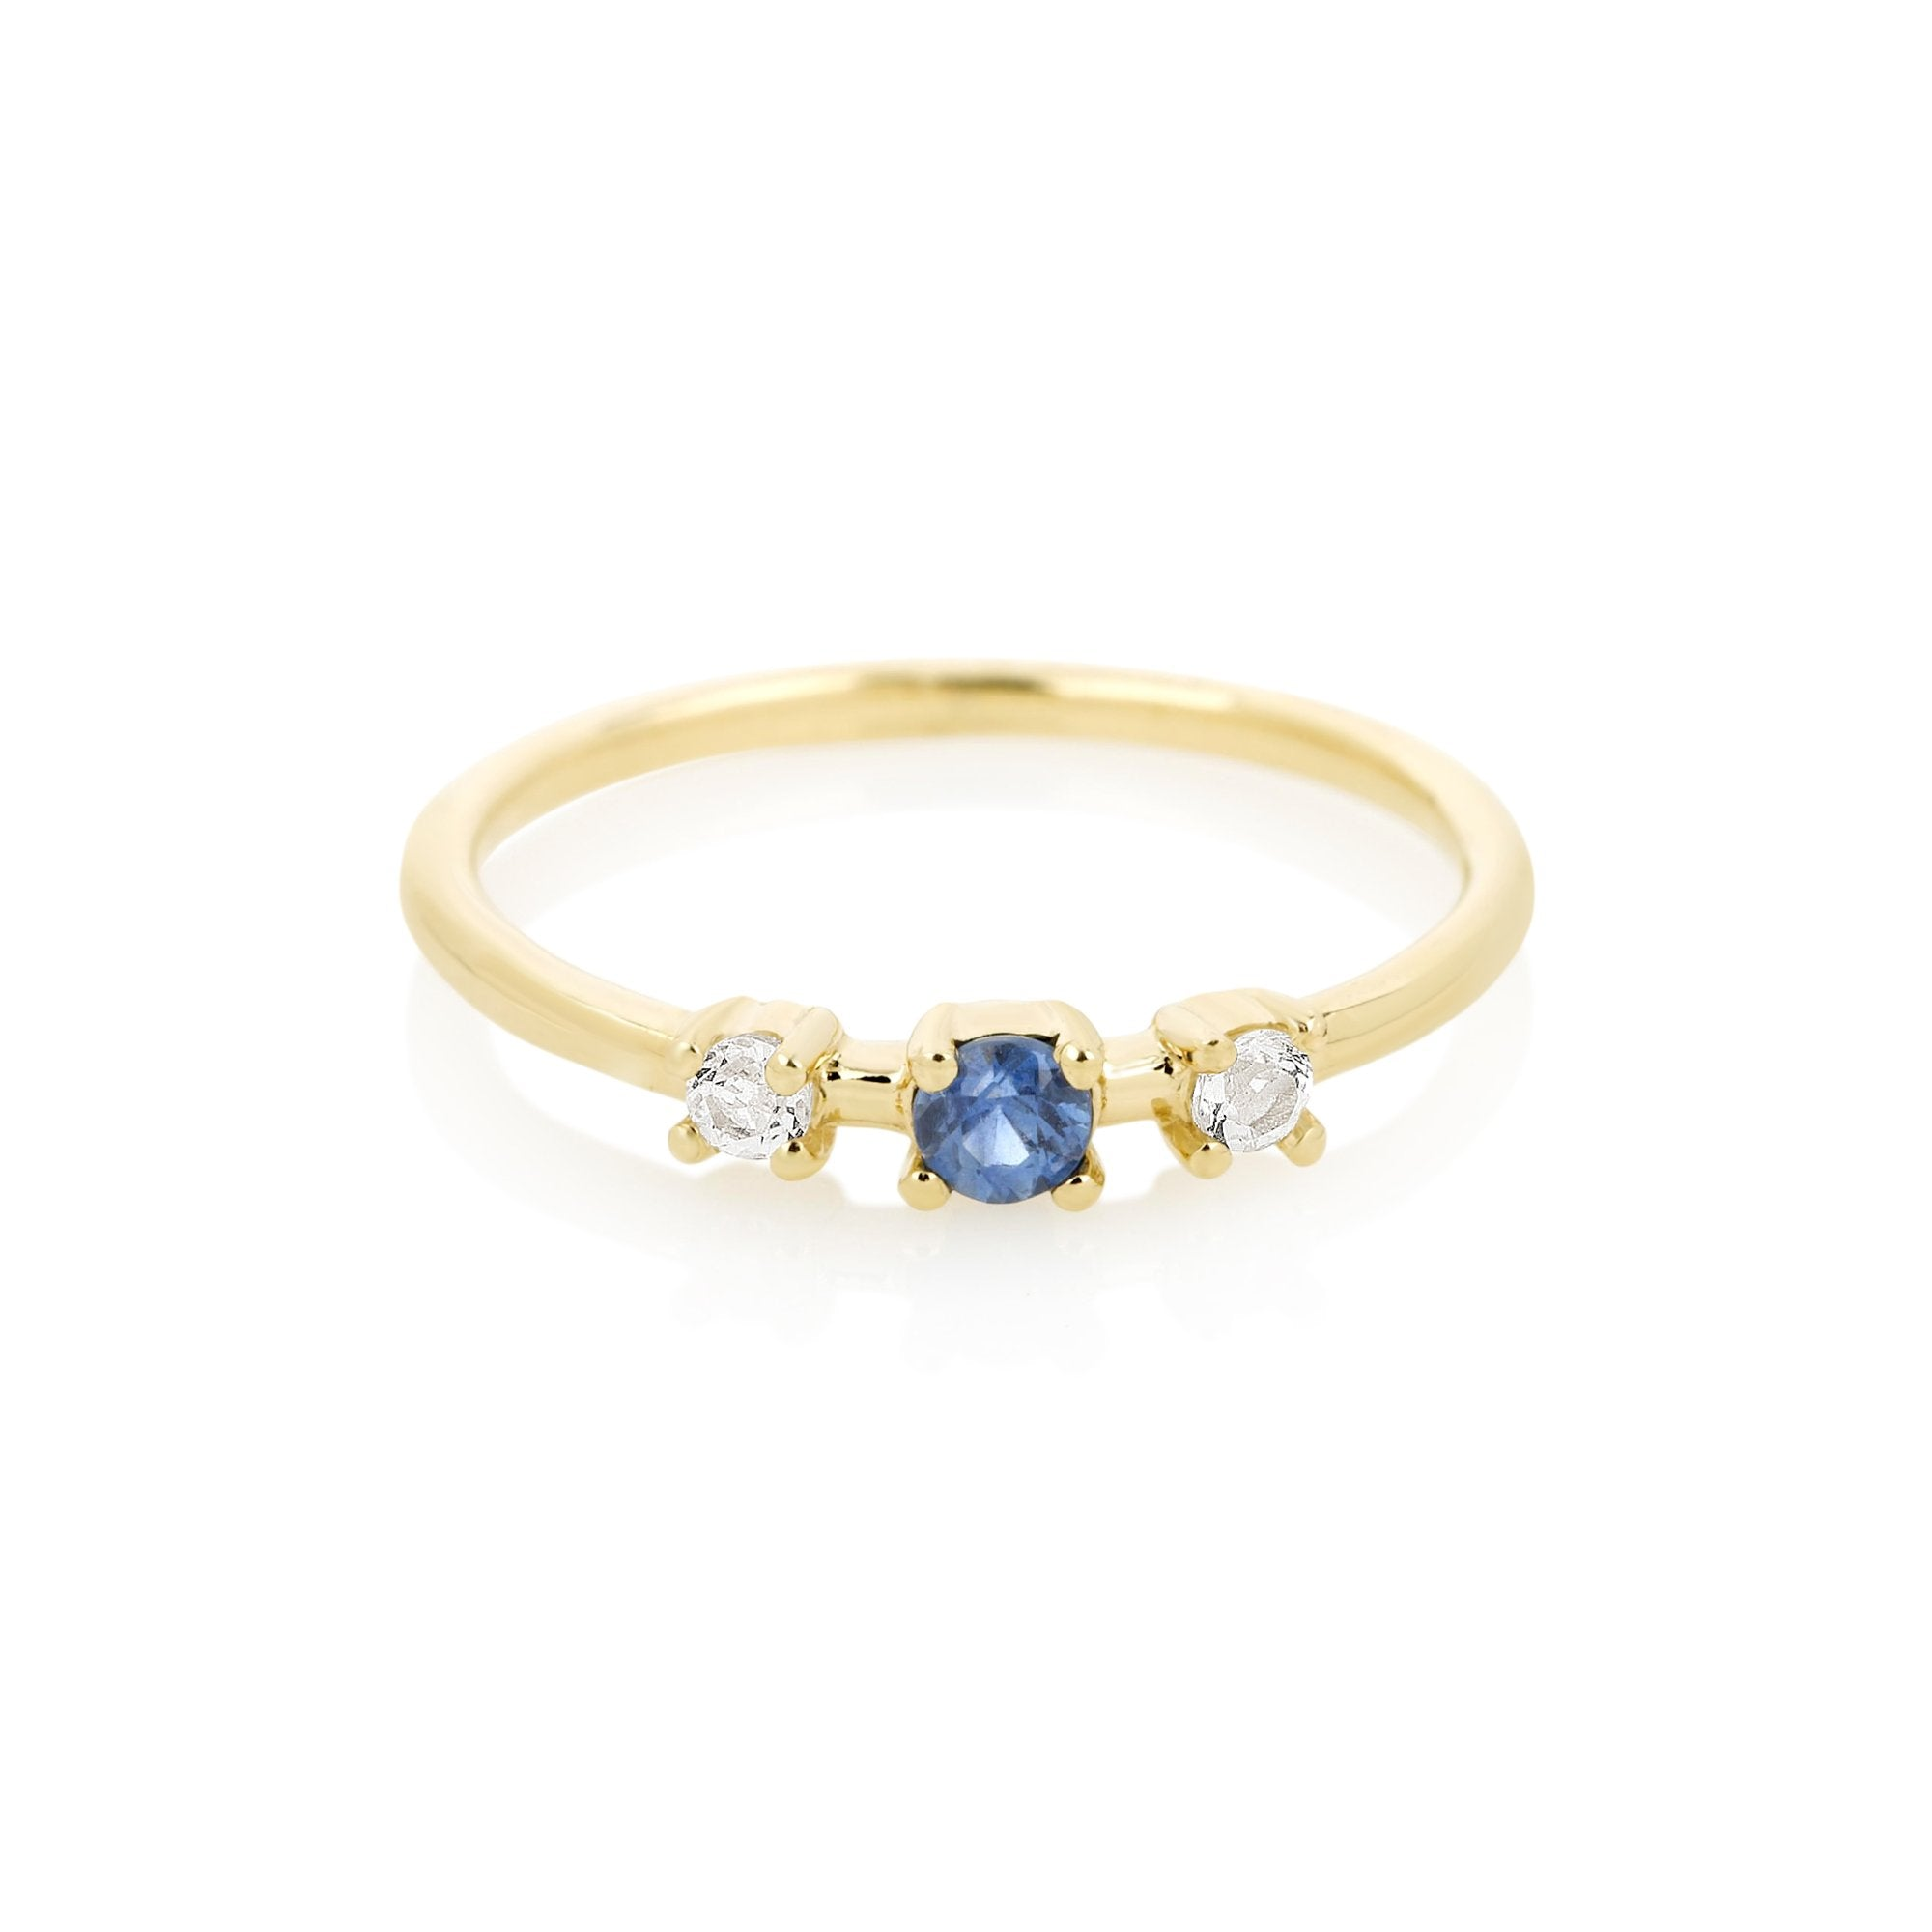 Tri Blue Sapphire and White Topaz Ring